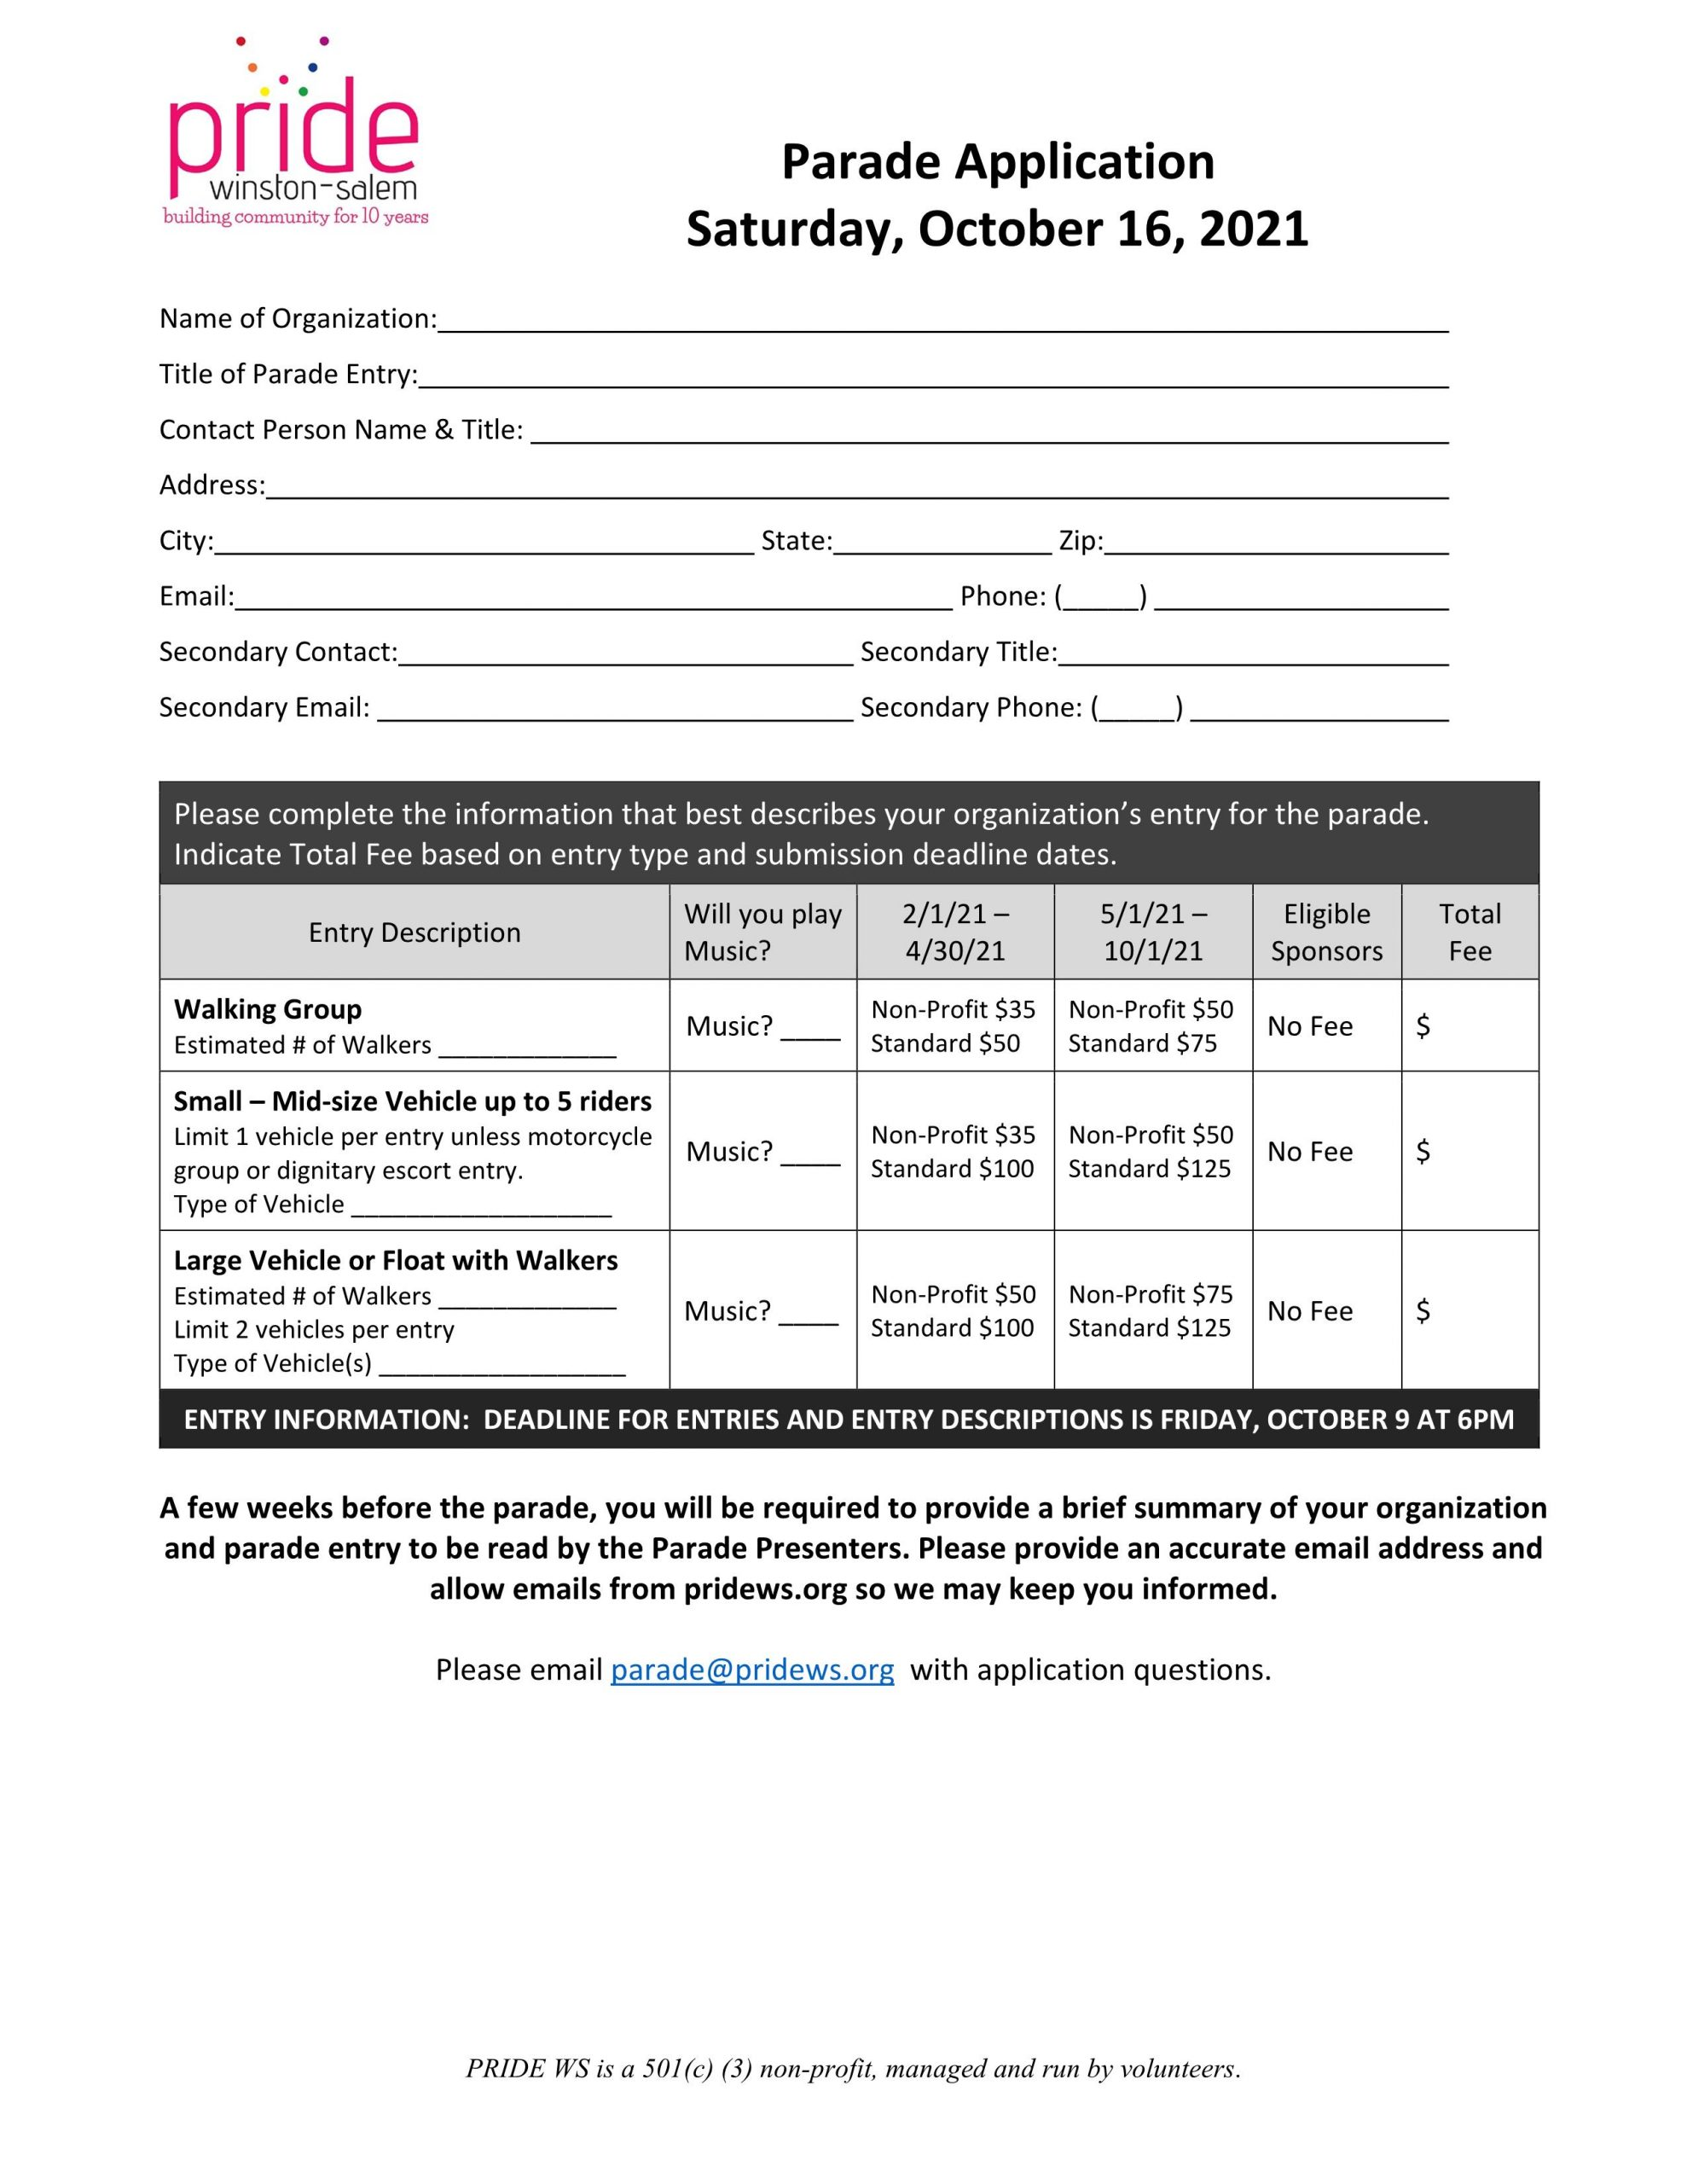 PARADE APPLICATION PAGE 1